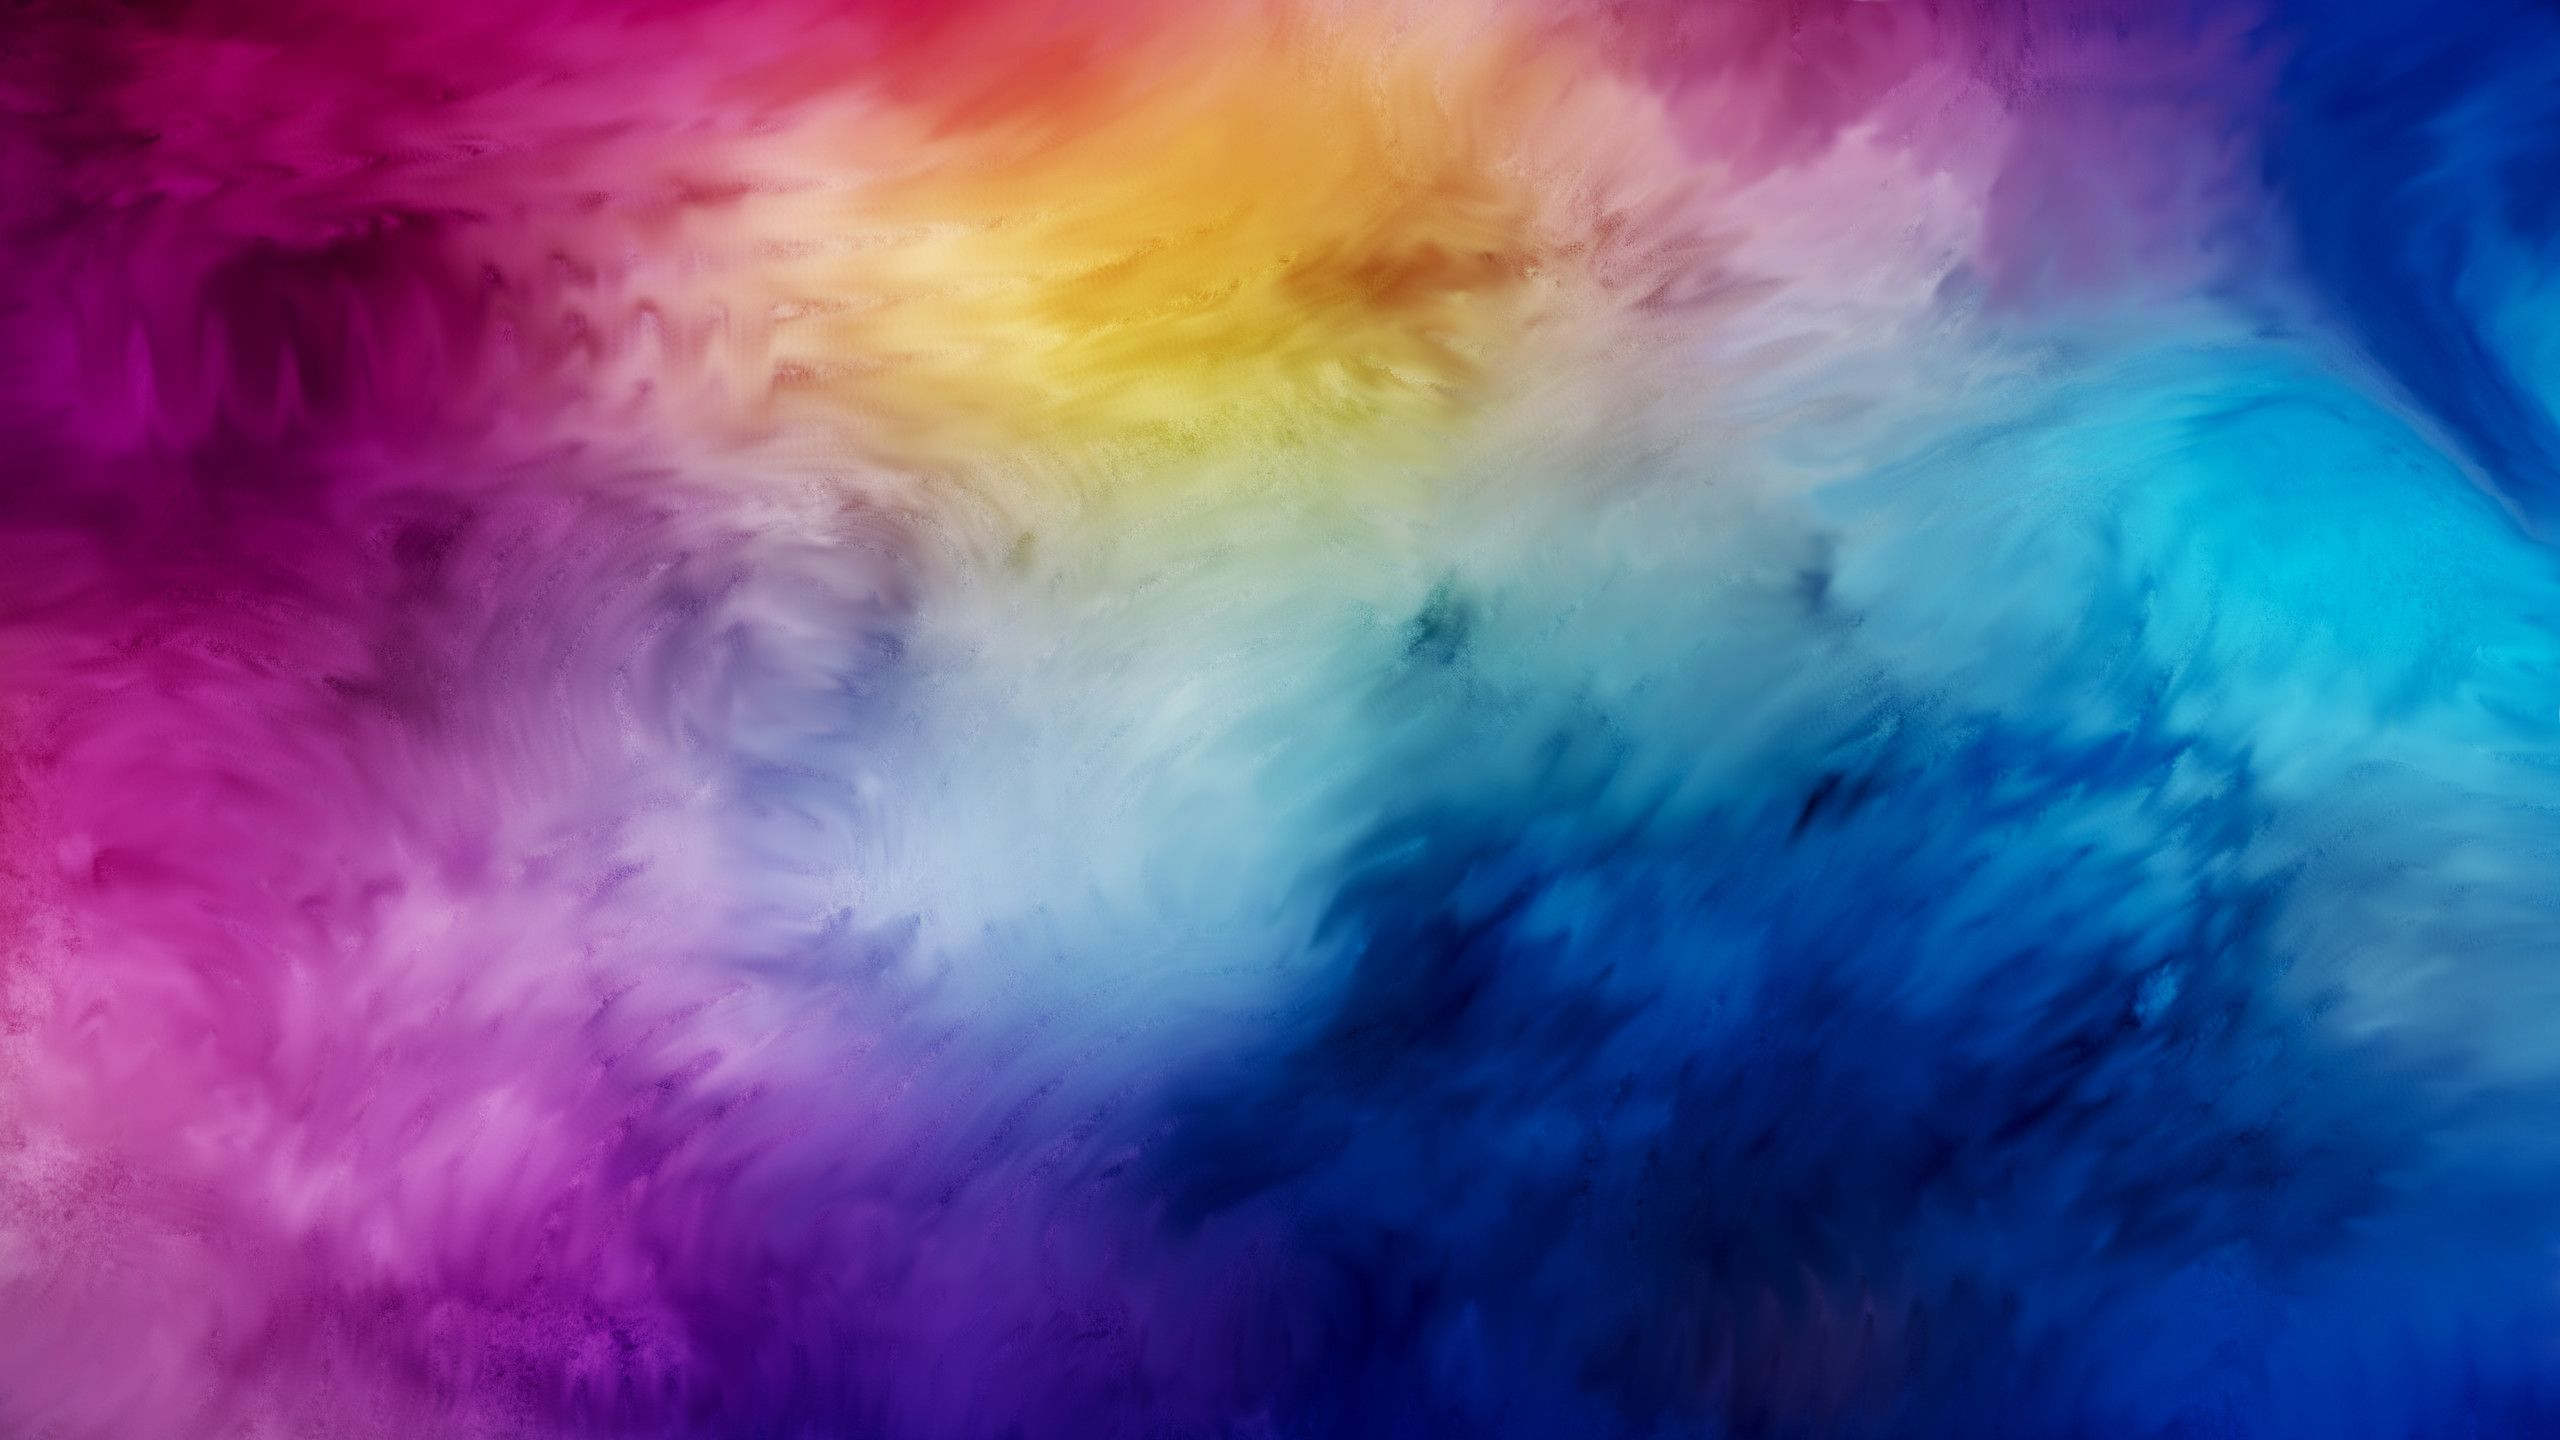 Colorful Abstract 4k Wallpapers - Wallpaper Cave